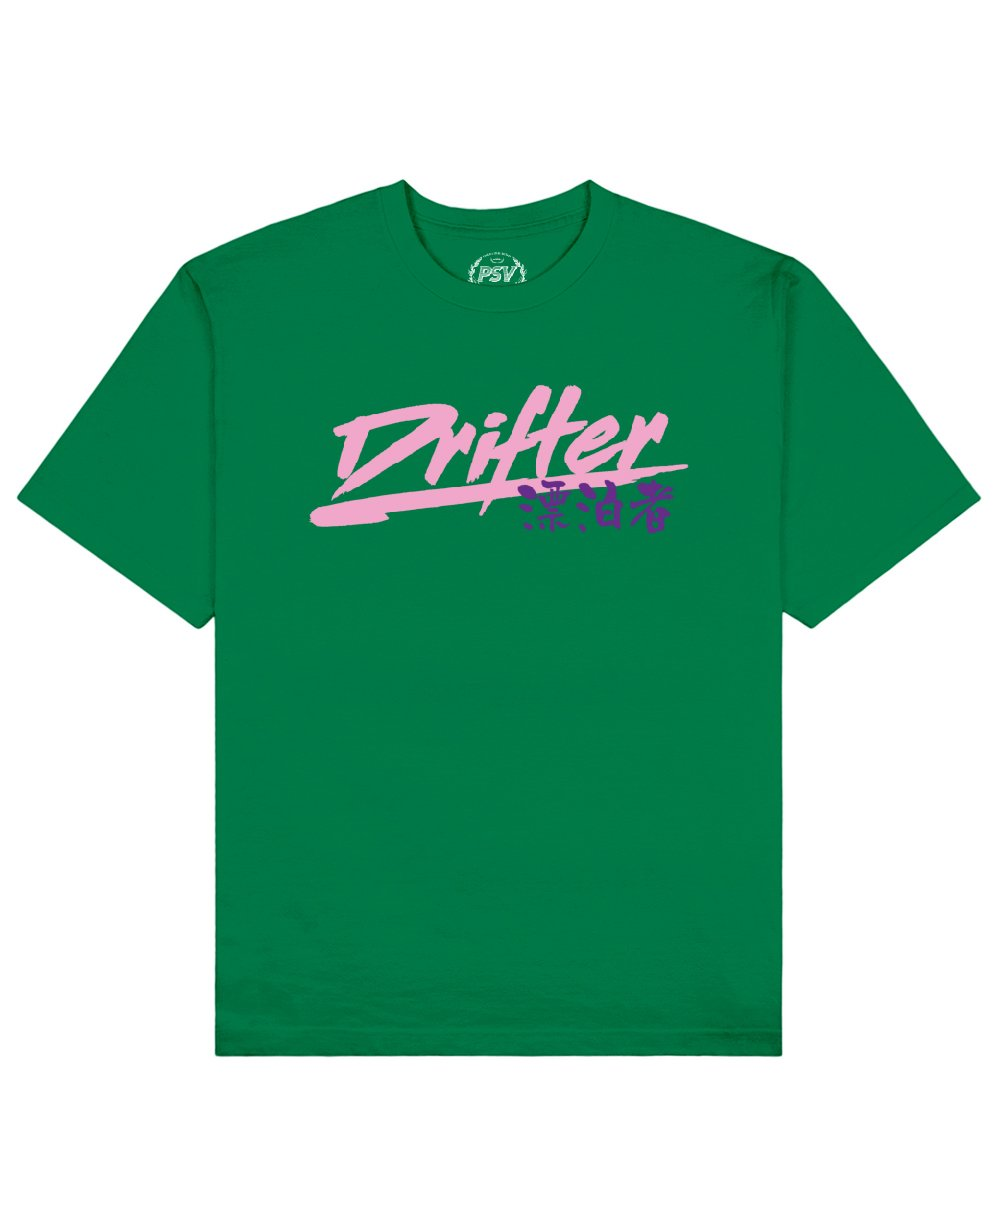 Drifter Print T-Shirt in Green - T-Shirts - PSV - BRANMA